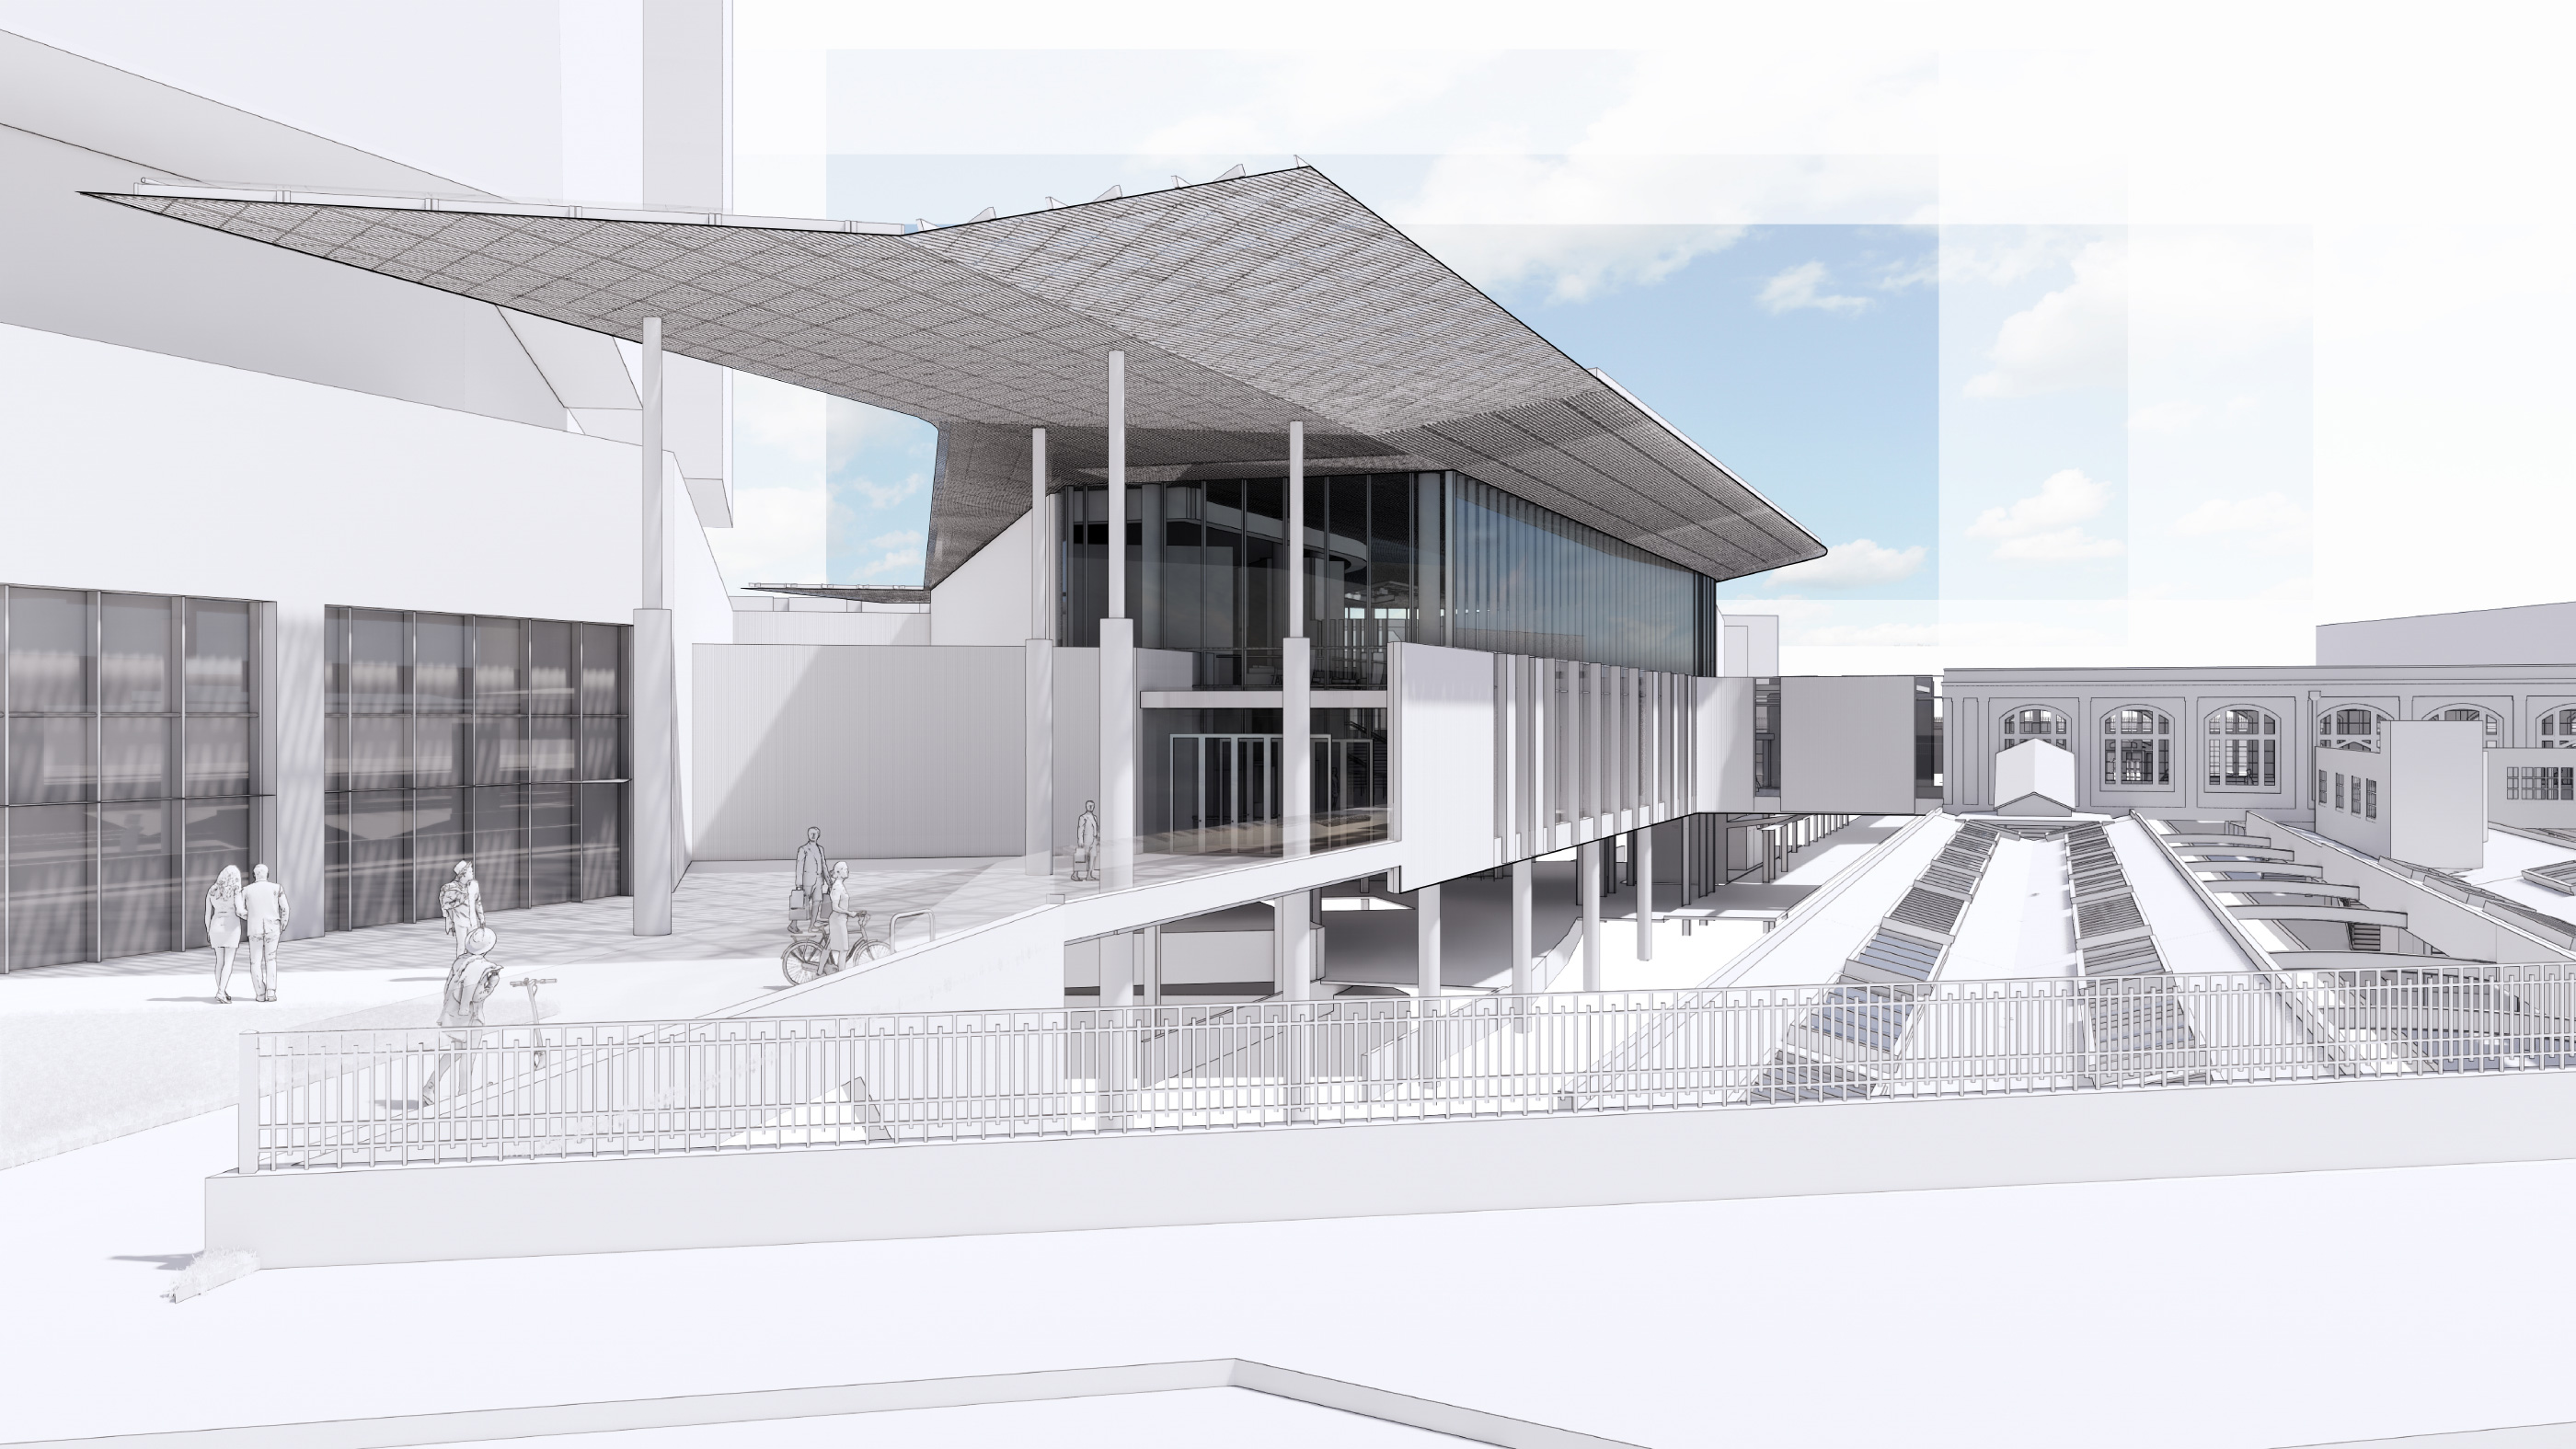 A simple white rendering of a new train station with large overhang